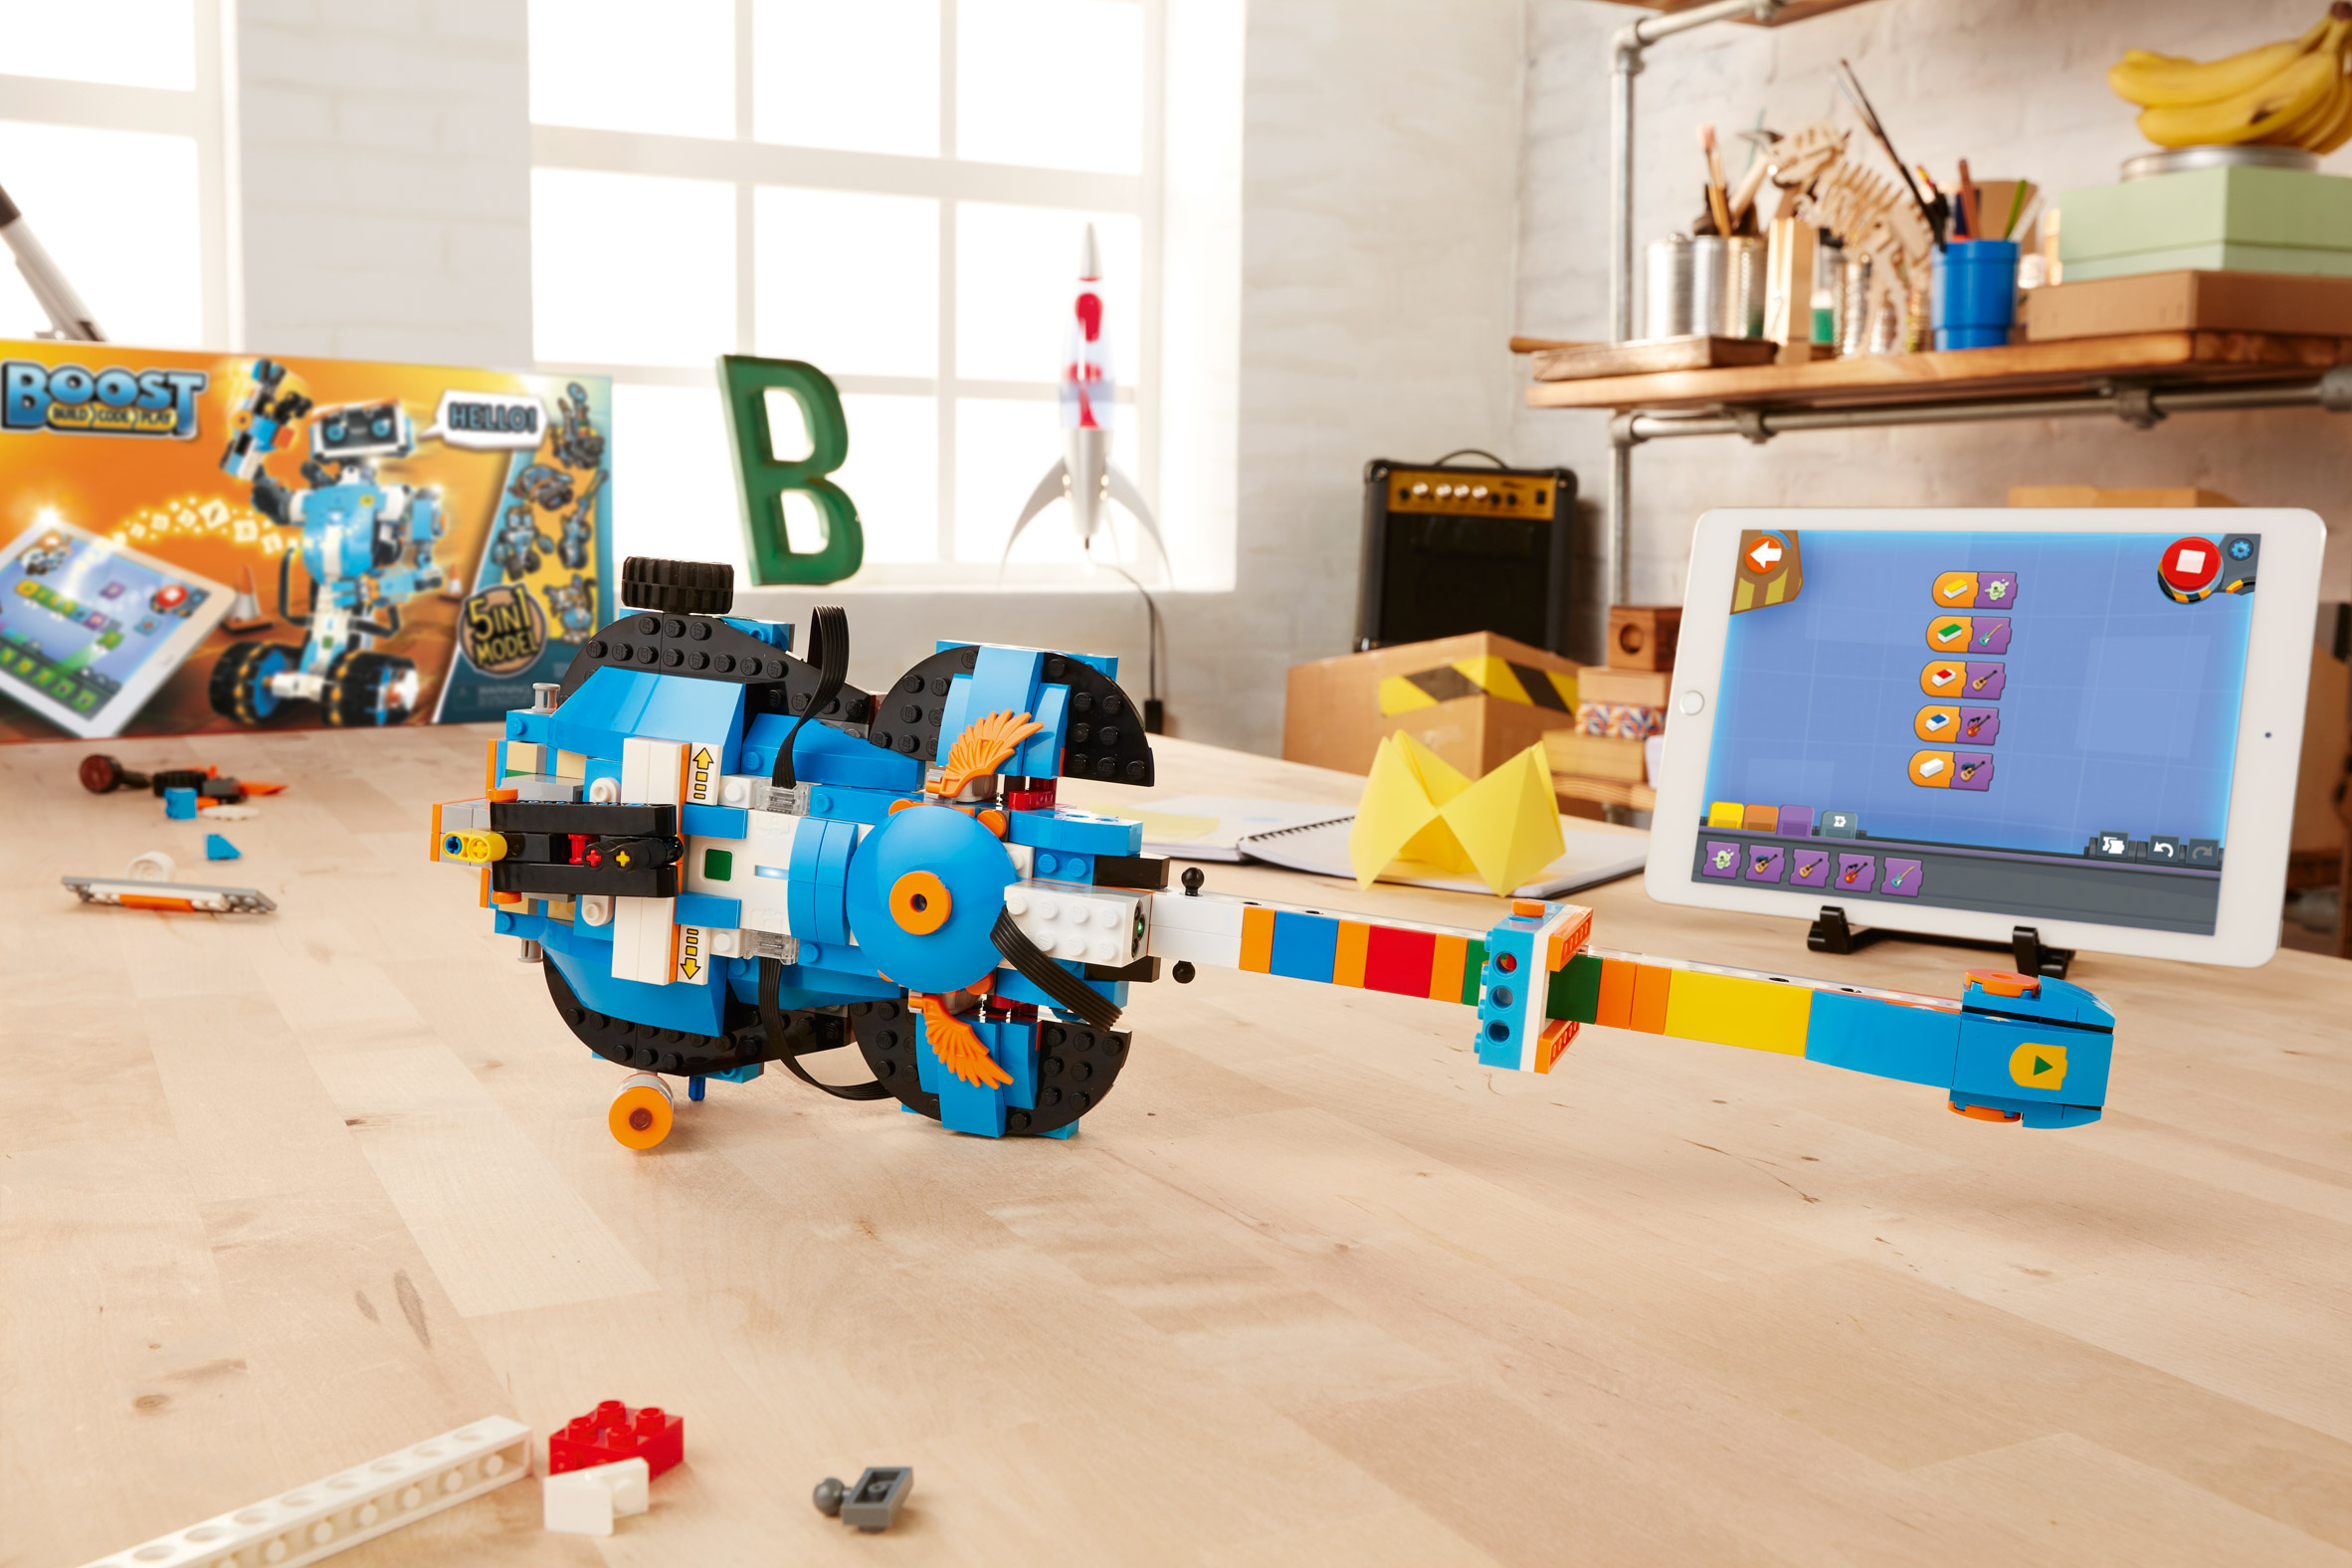 CES 2017: Lego announces robot-making toolkit for kids